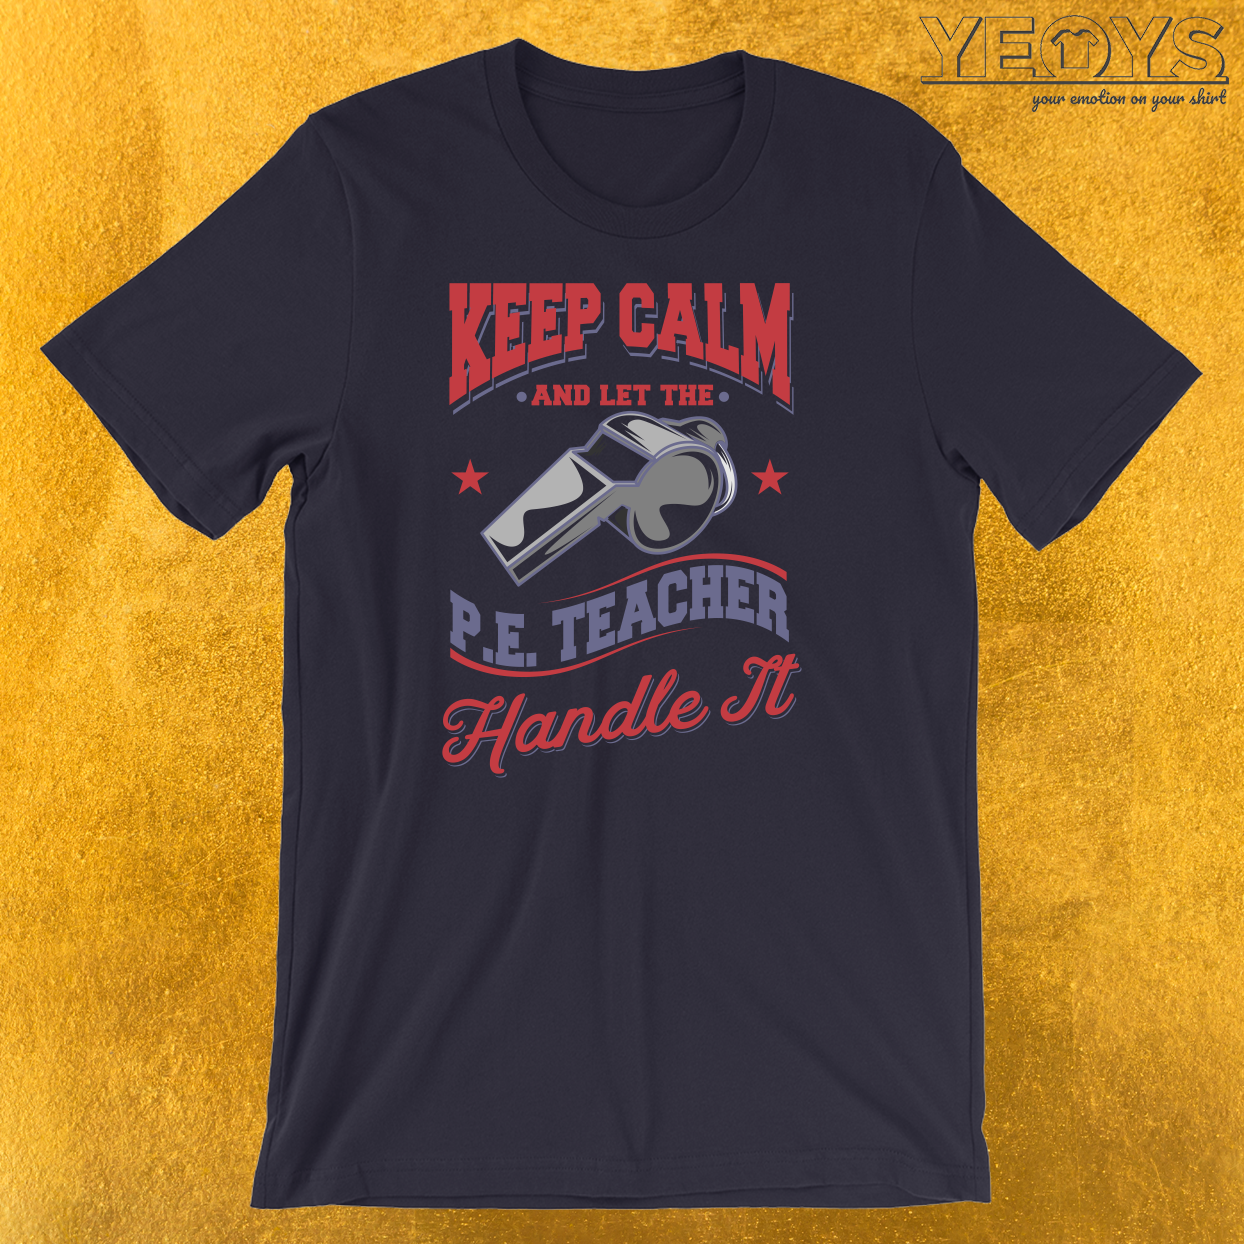 Let The PE Teacher Handle It T-Shirt